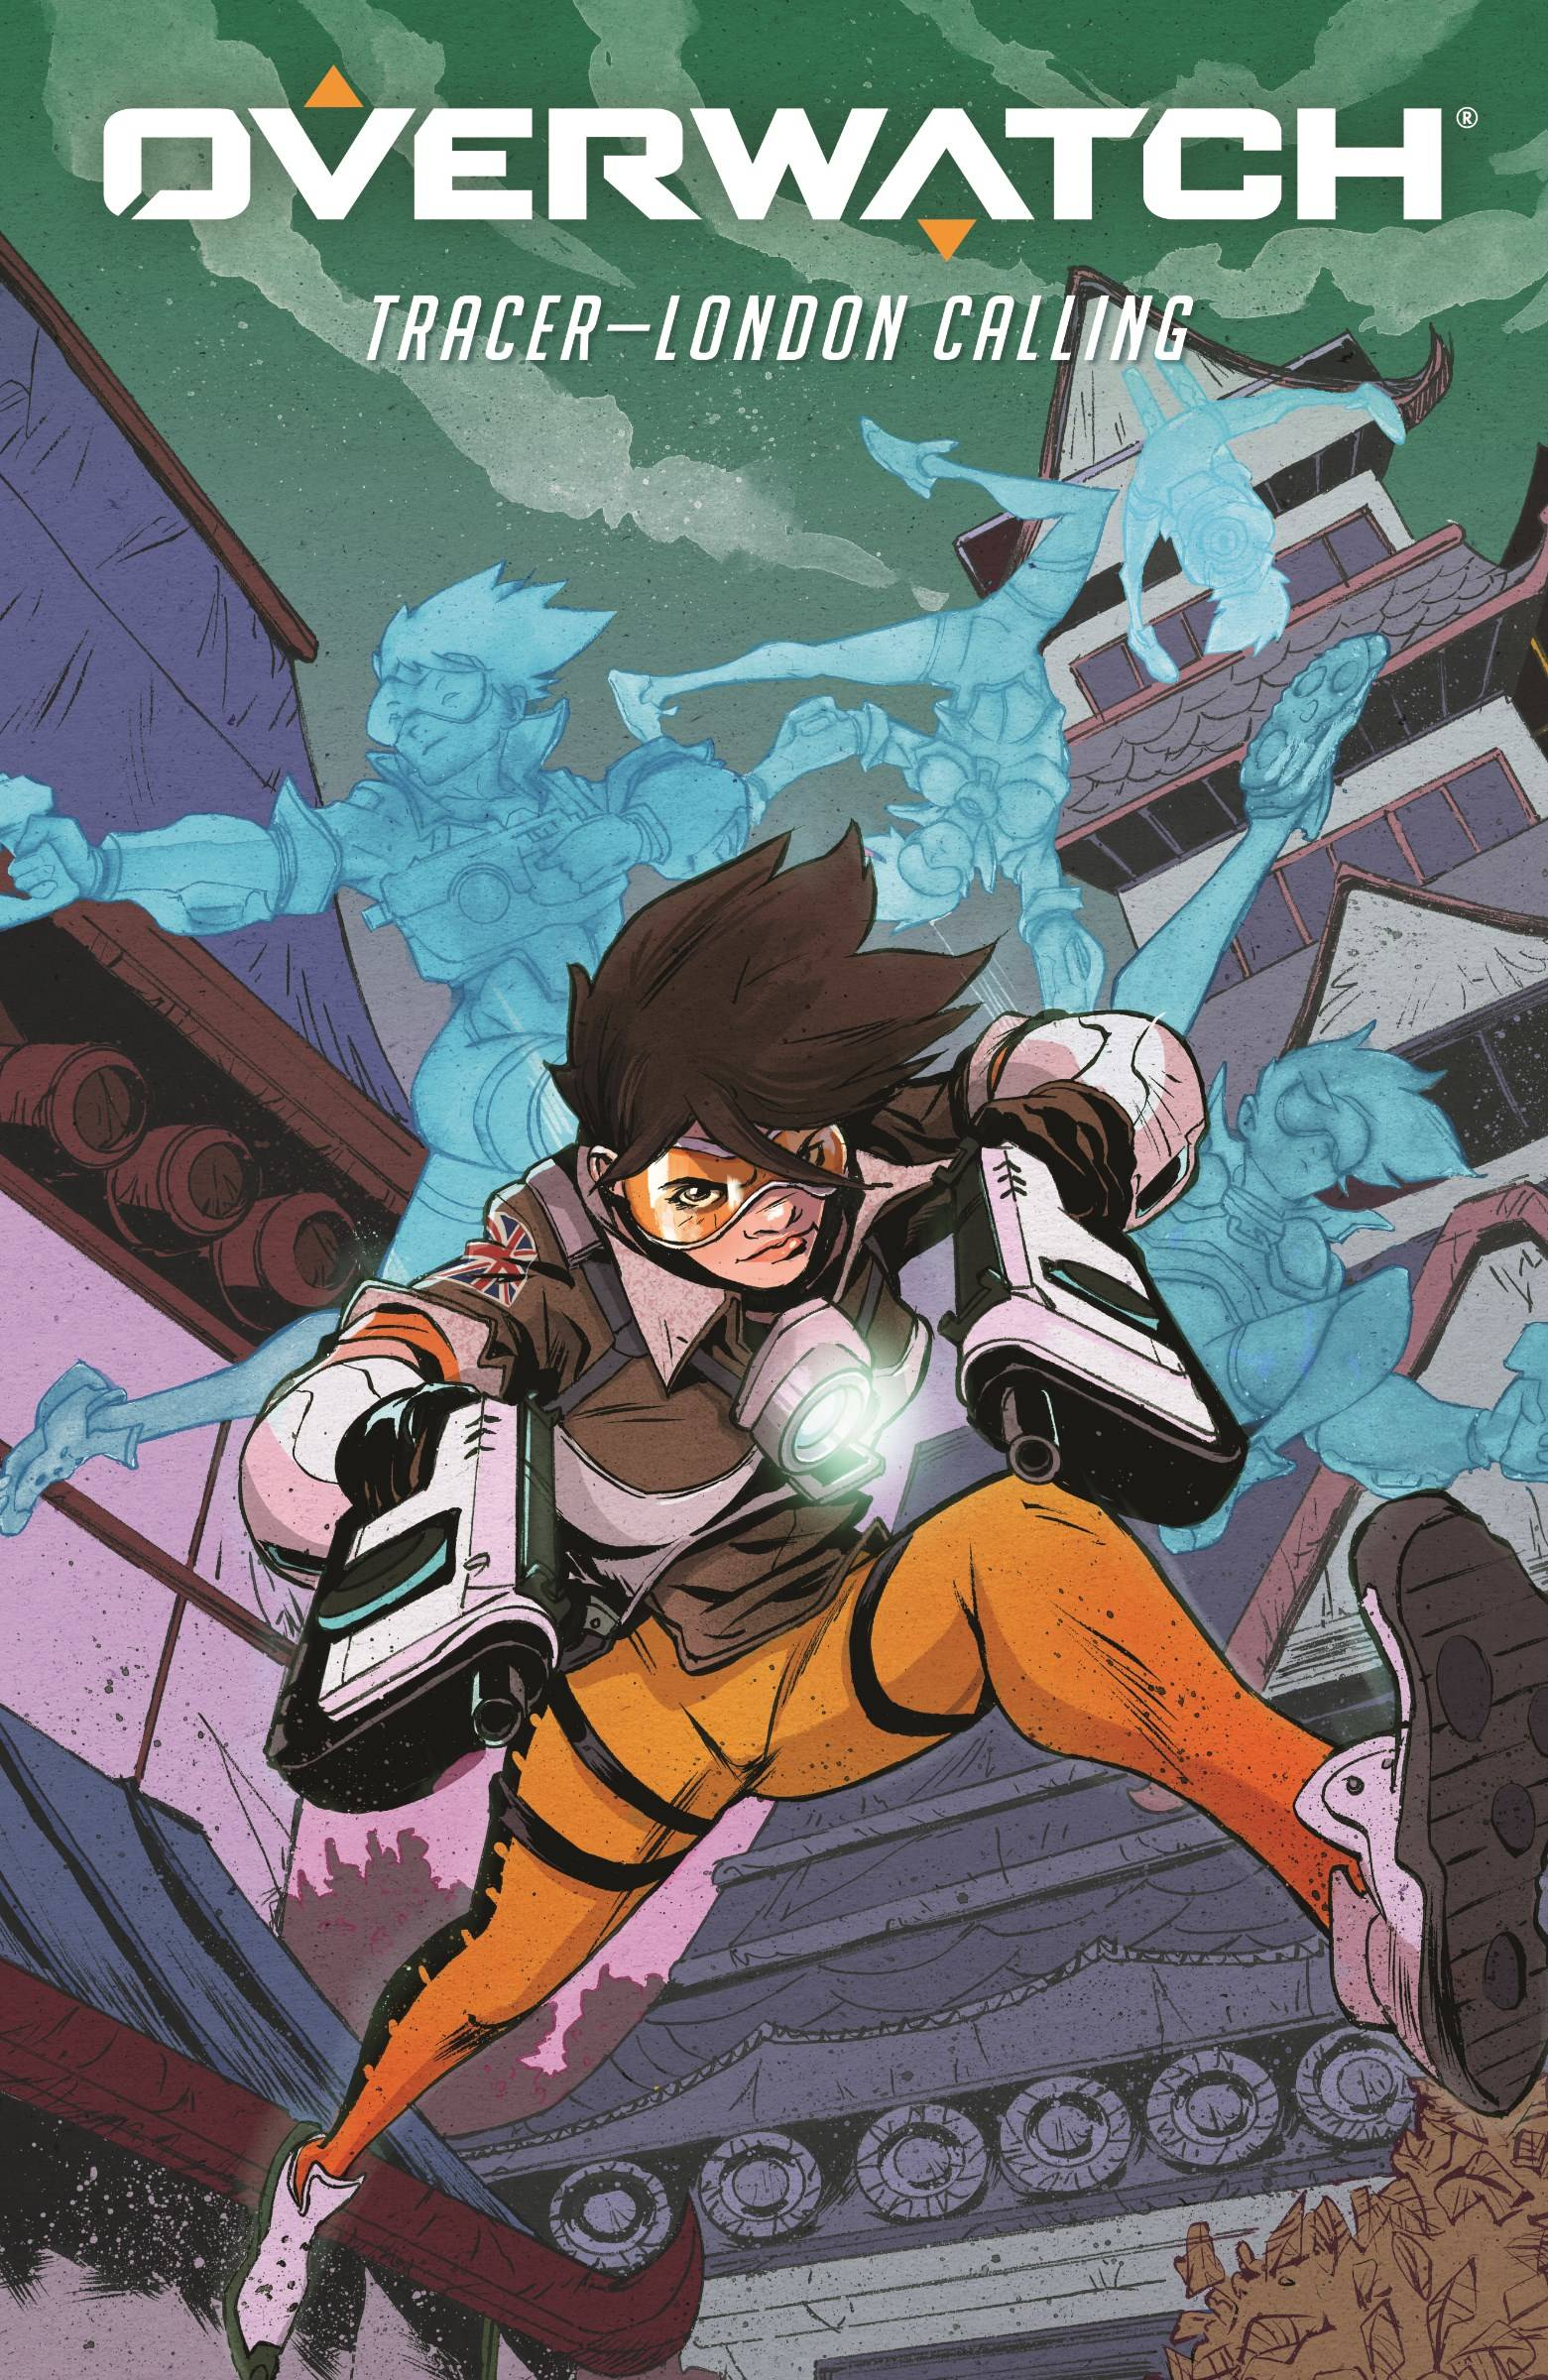 OVERWATCH TRACER LONDON CALLING #5 (OF 5) CVR B GREENE